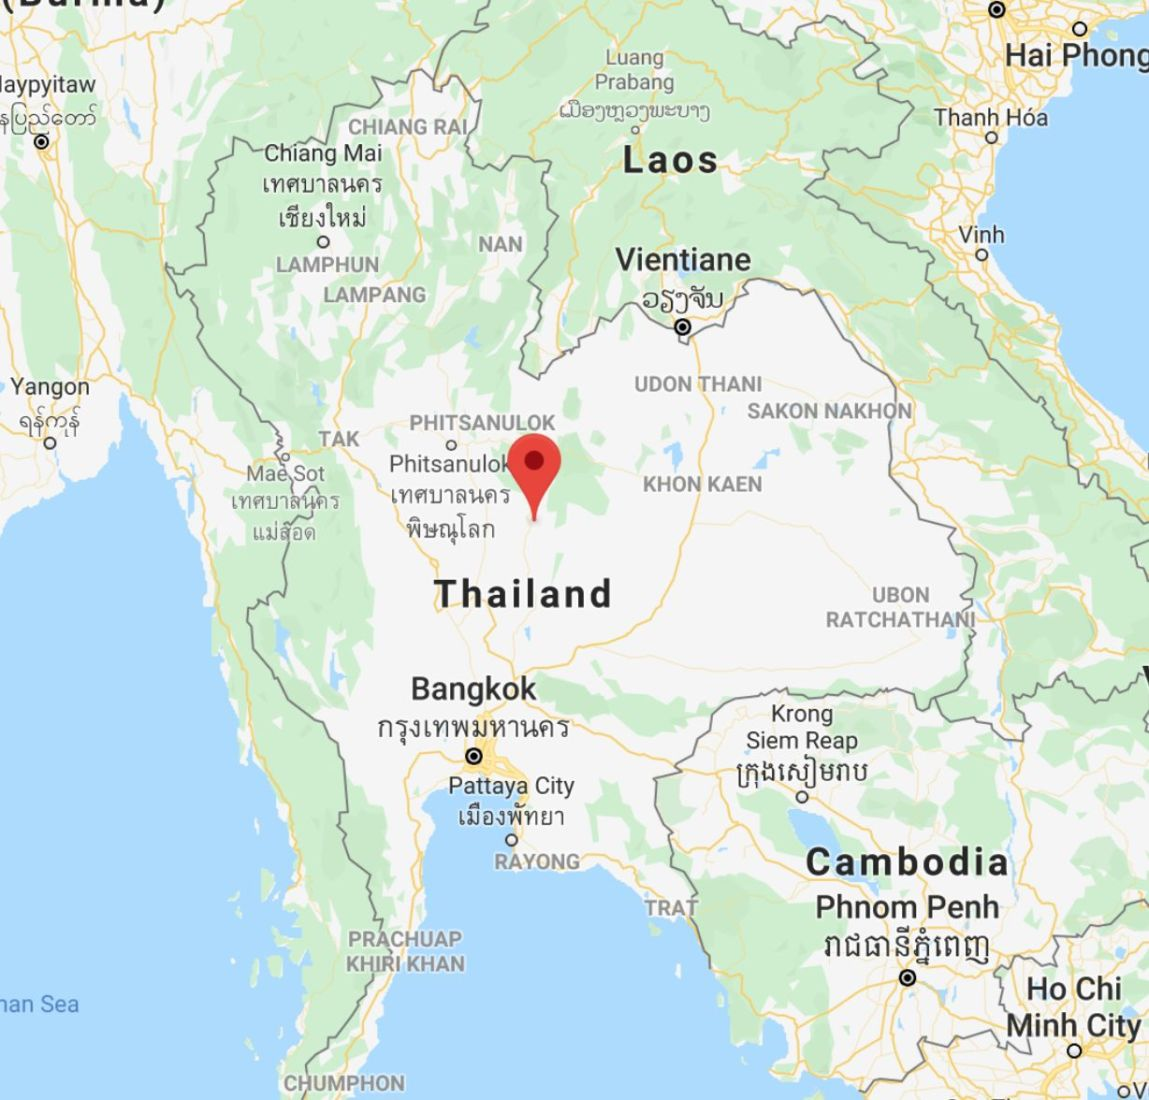 5 dead, 8 injured as tourist passenger van slams into rear of broken down truck in central Thailand   News by Thaiger